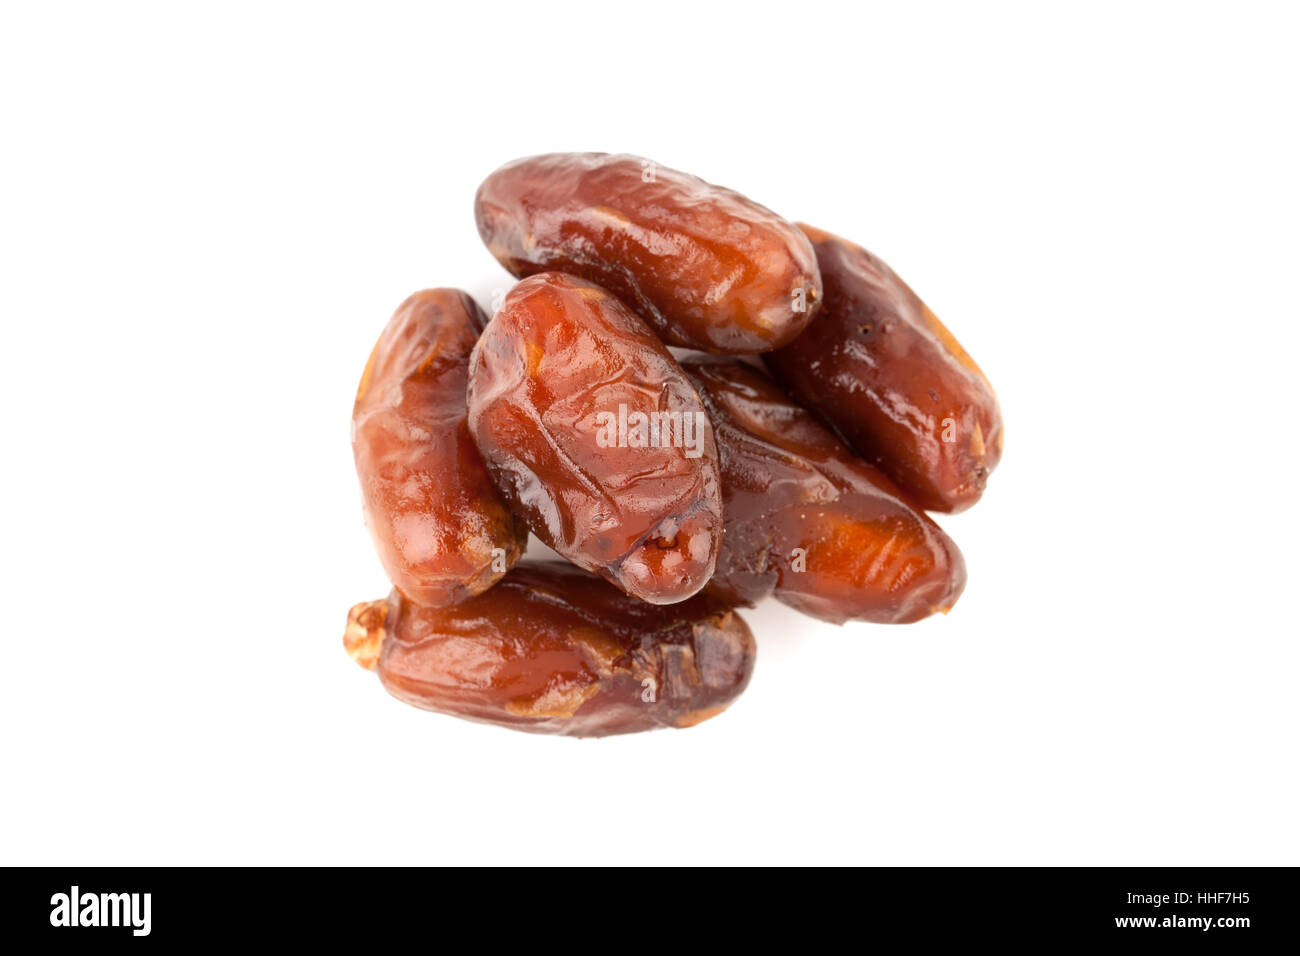 date palm dried fruit isolated on white background - Stock Image